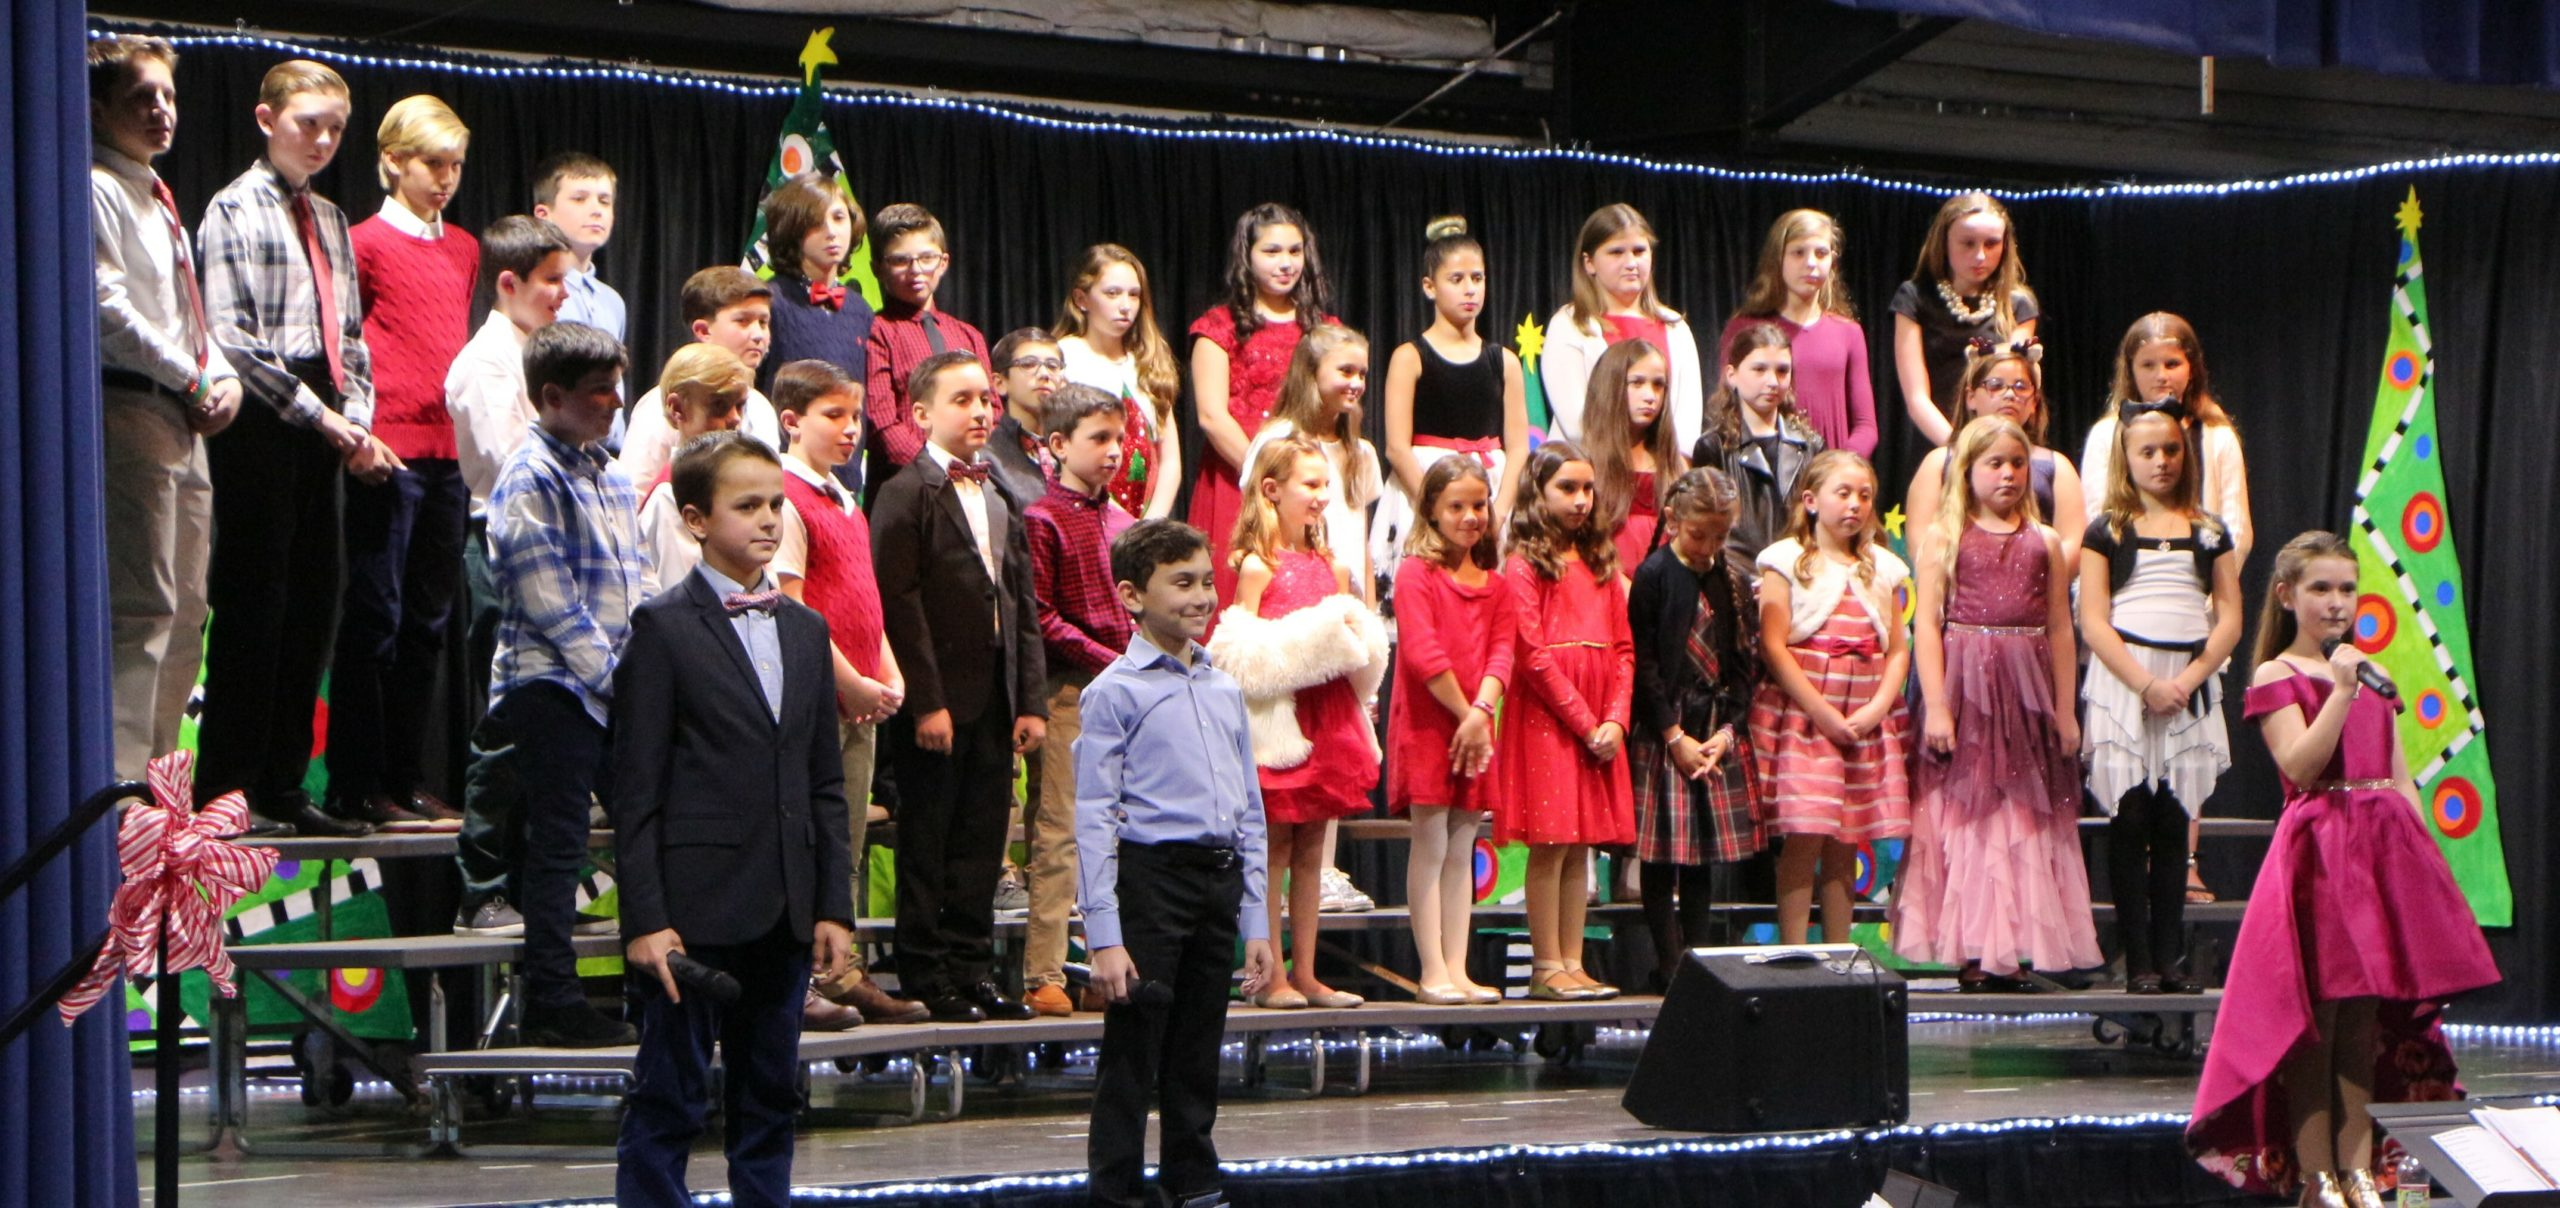 Raynor Country Day School hosted its annual Winter Concert for students in fourth- through sixth-grade. During the event, the senior band, jazz band, senior chorus, the ukulele ensemble and piano soloists performed. The senior chorus performing.